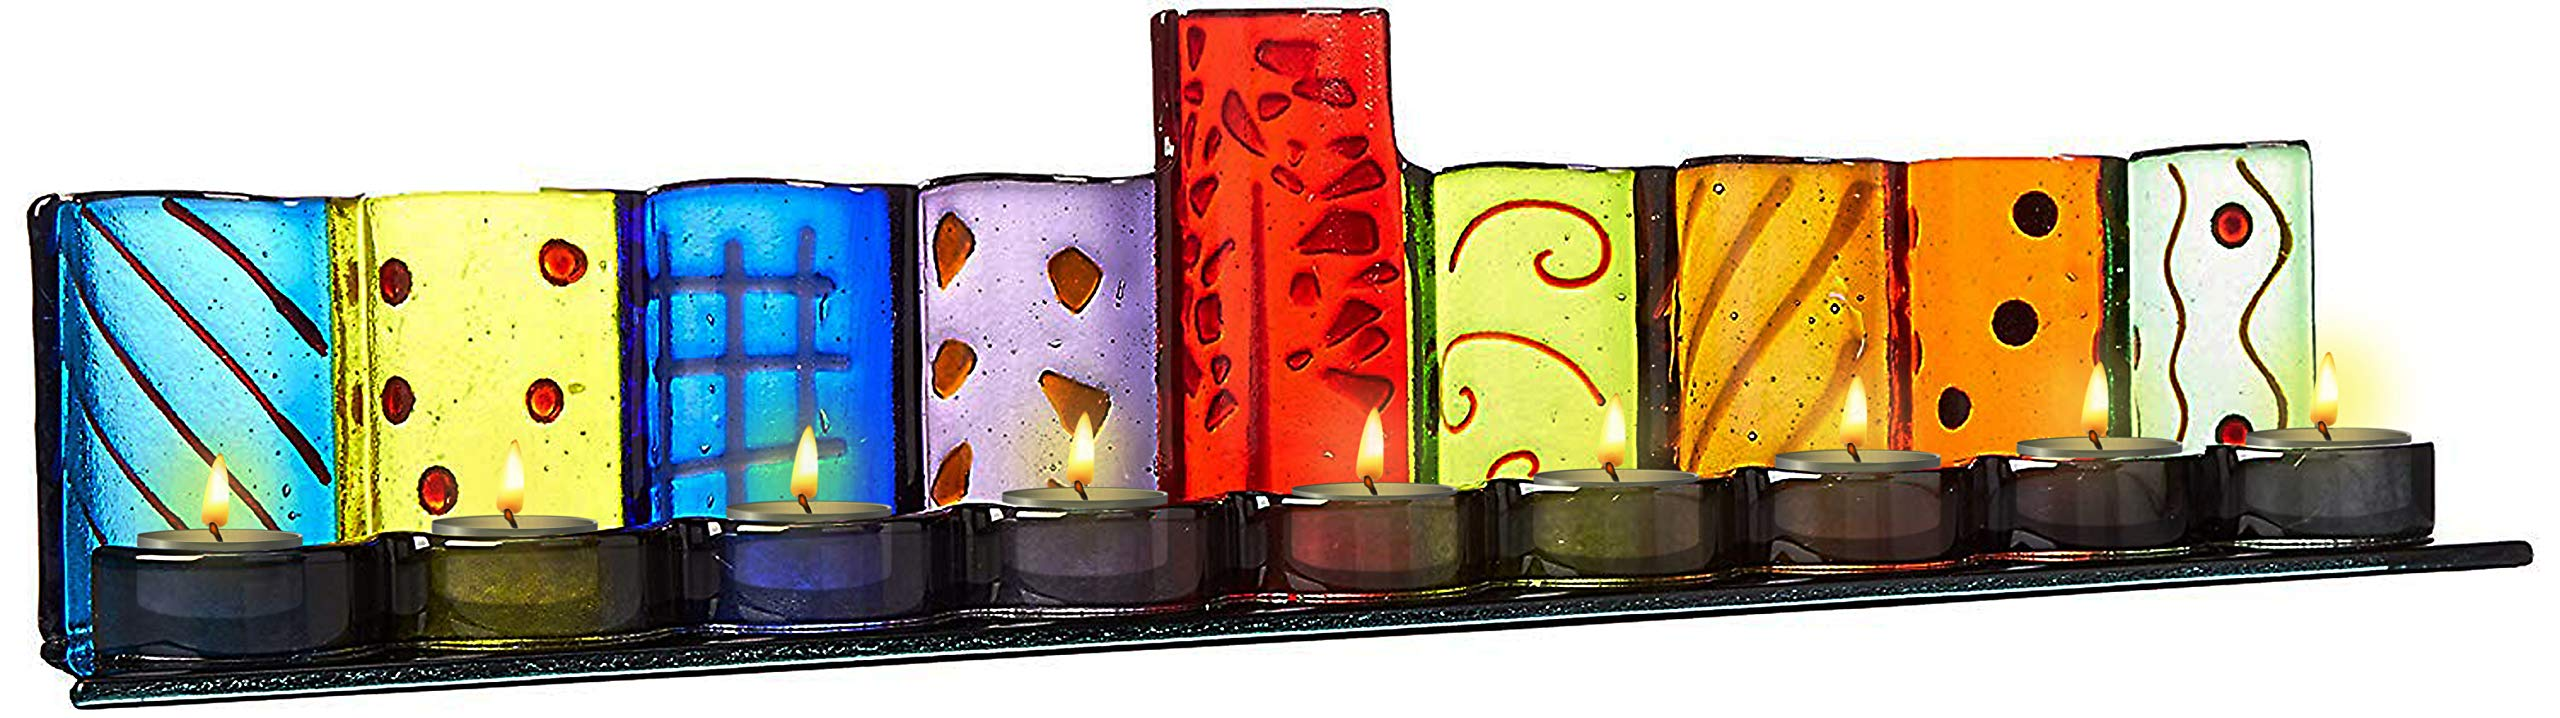 Ner Mitzvah Glass Tealight Candle Menorah - Extra Large for Tea Lights - Handcrafted Colorful Glass Menora with Painted Designs